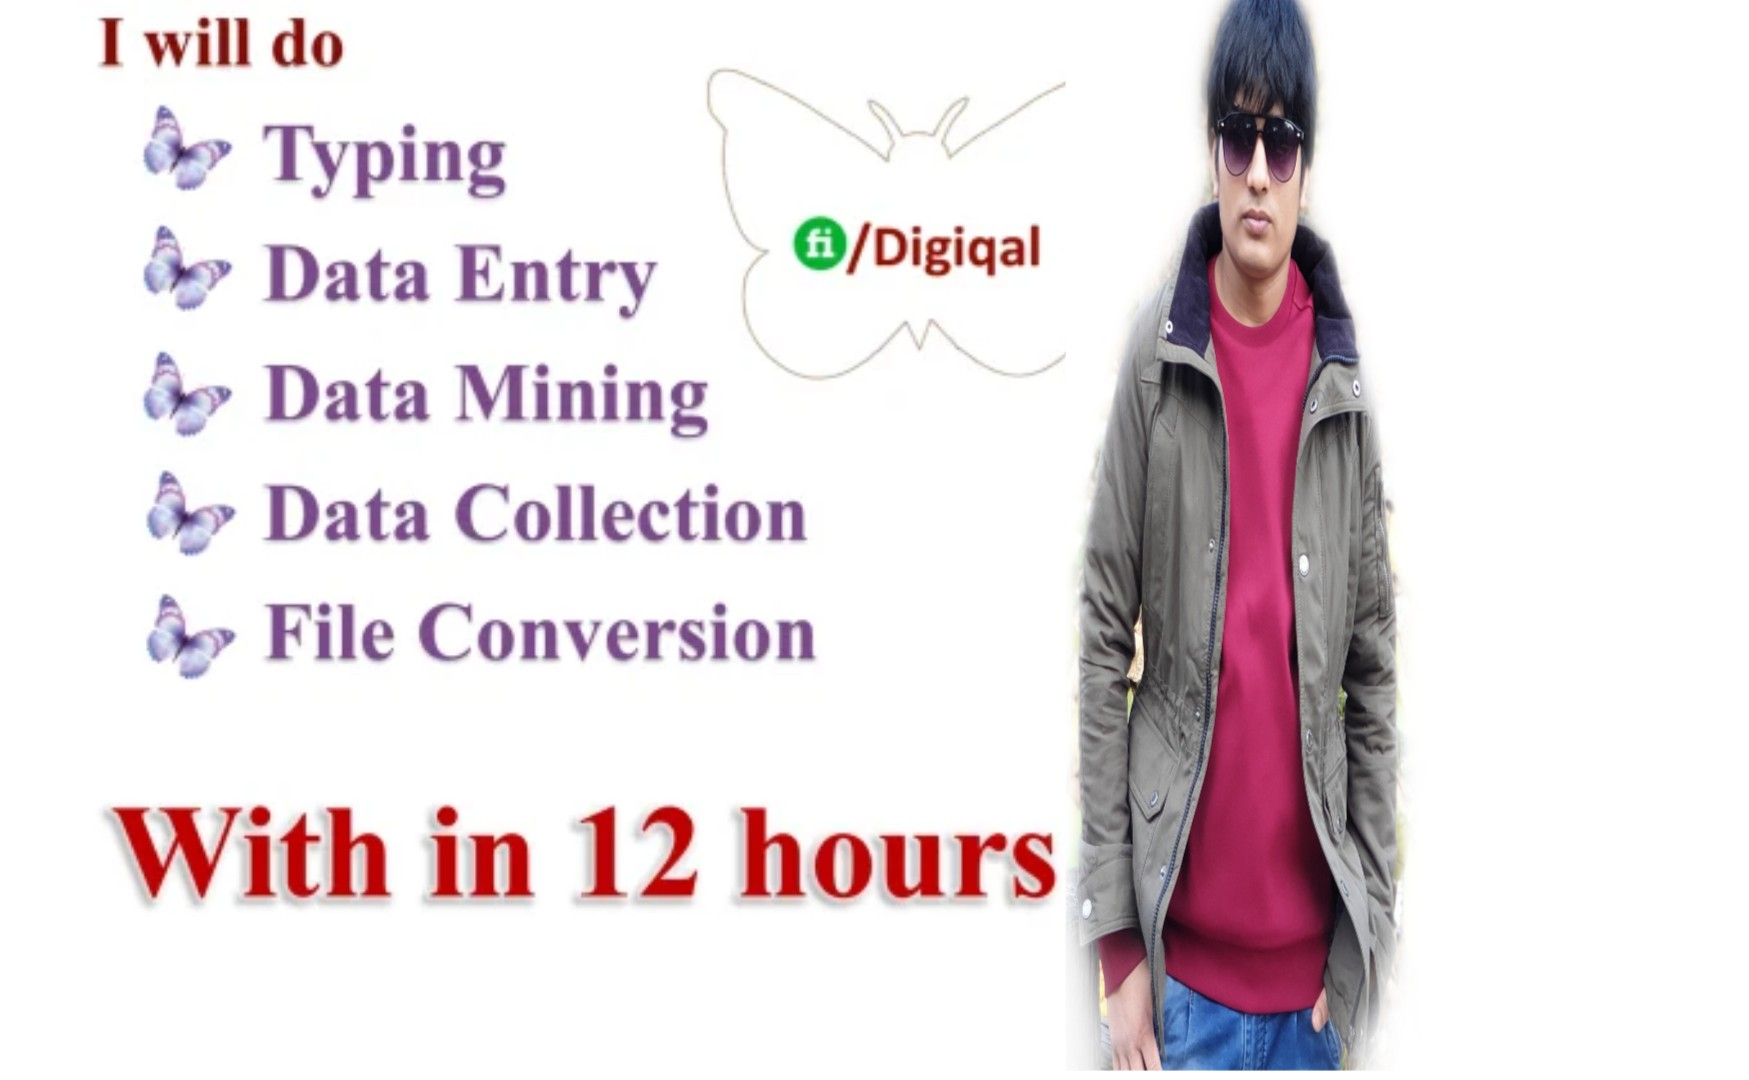 permanent virtual assistant for dada entry, dada mining copy past,  web research.